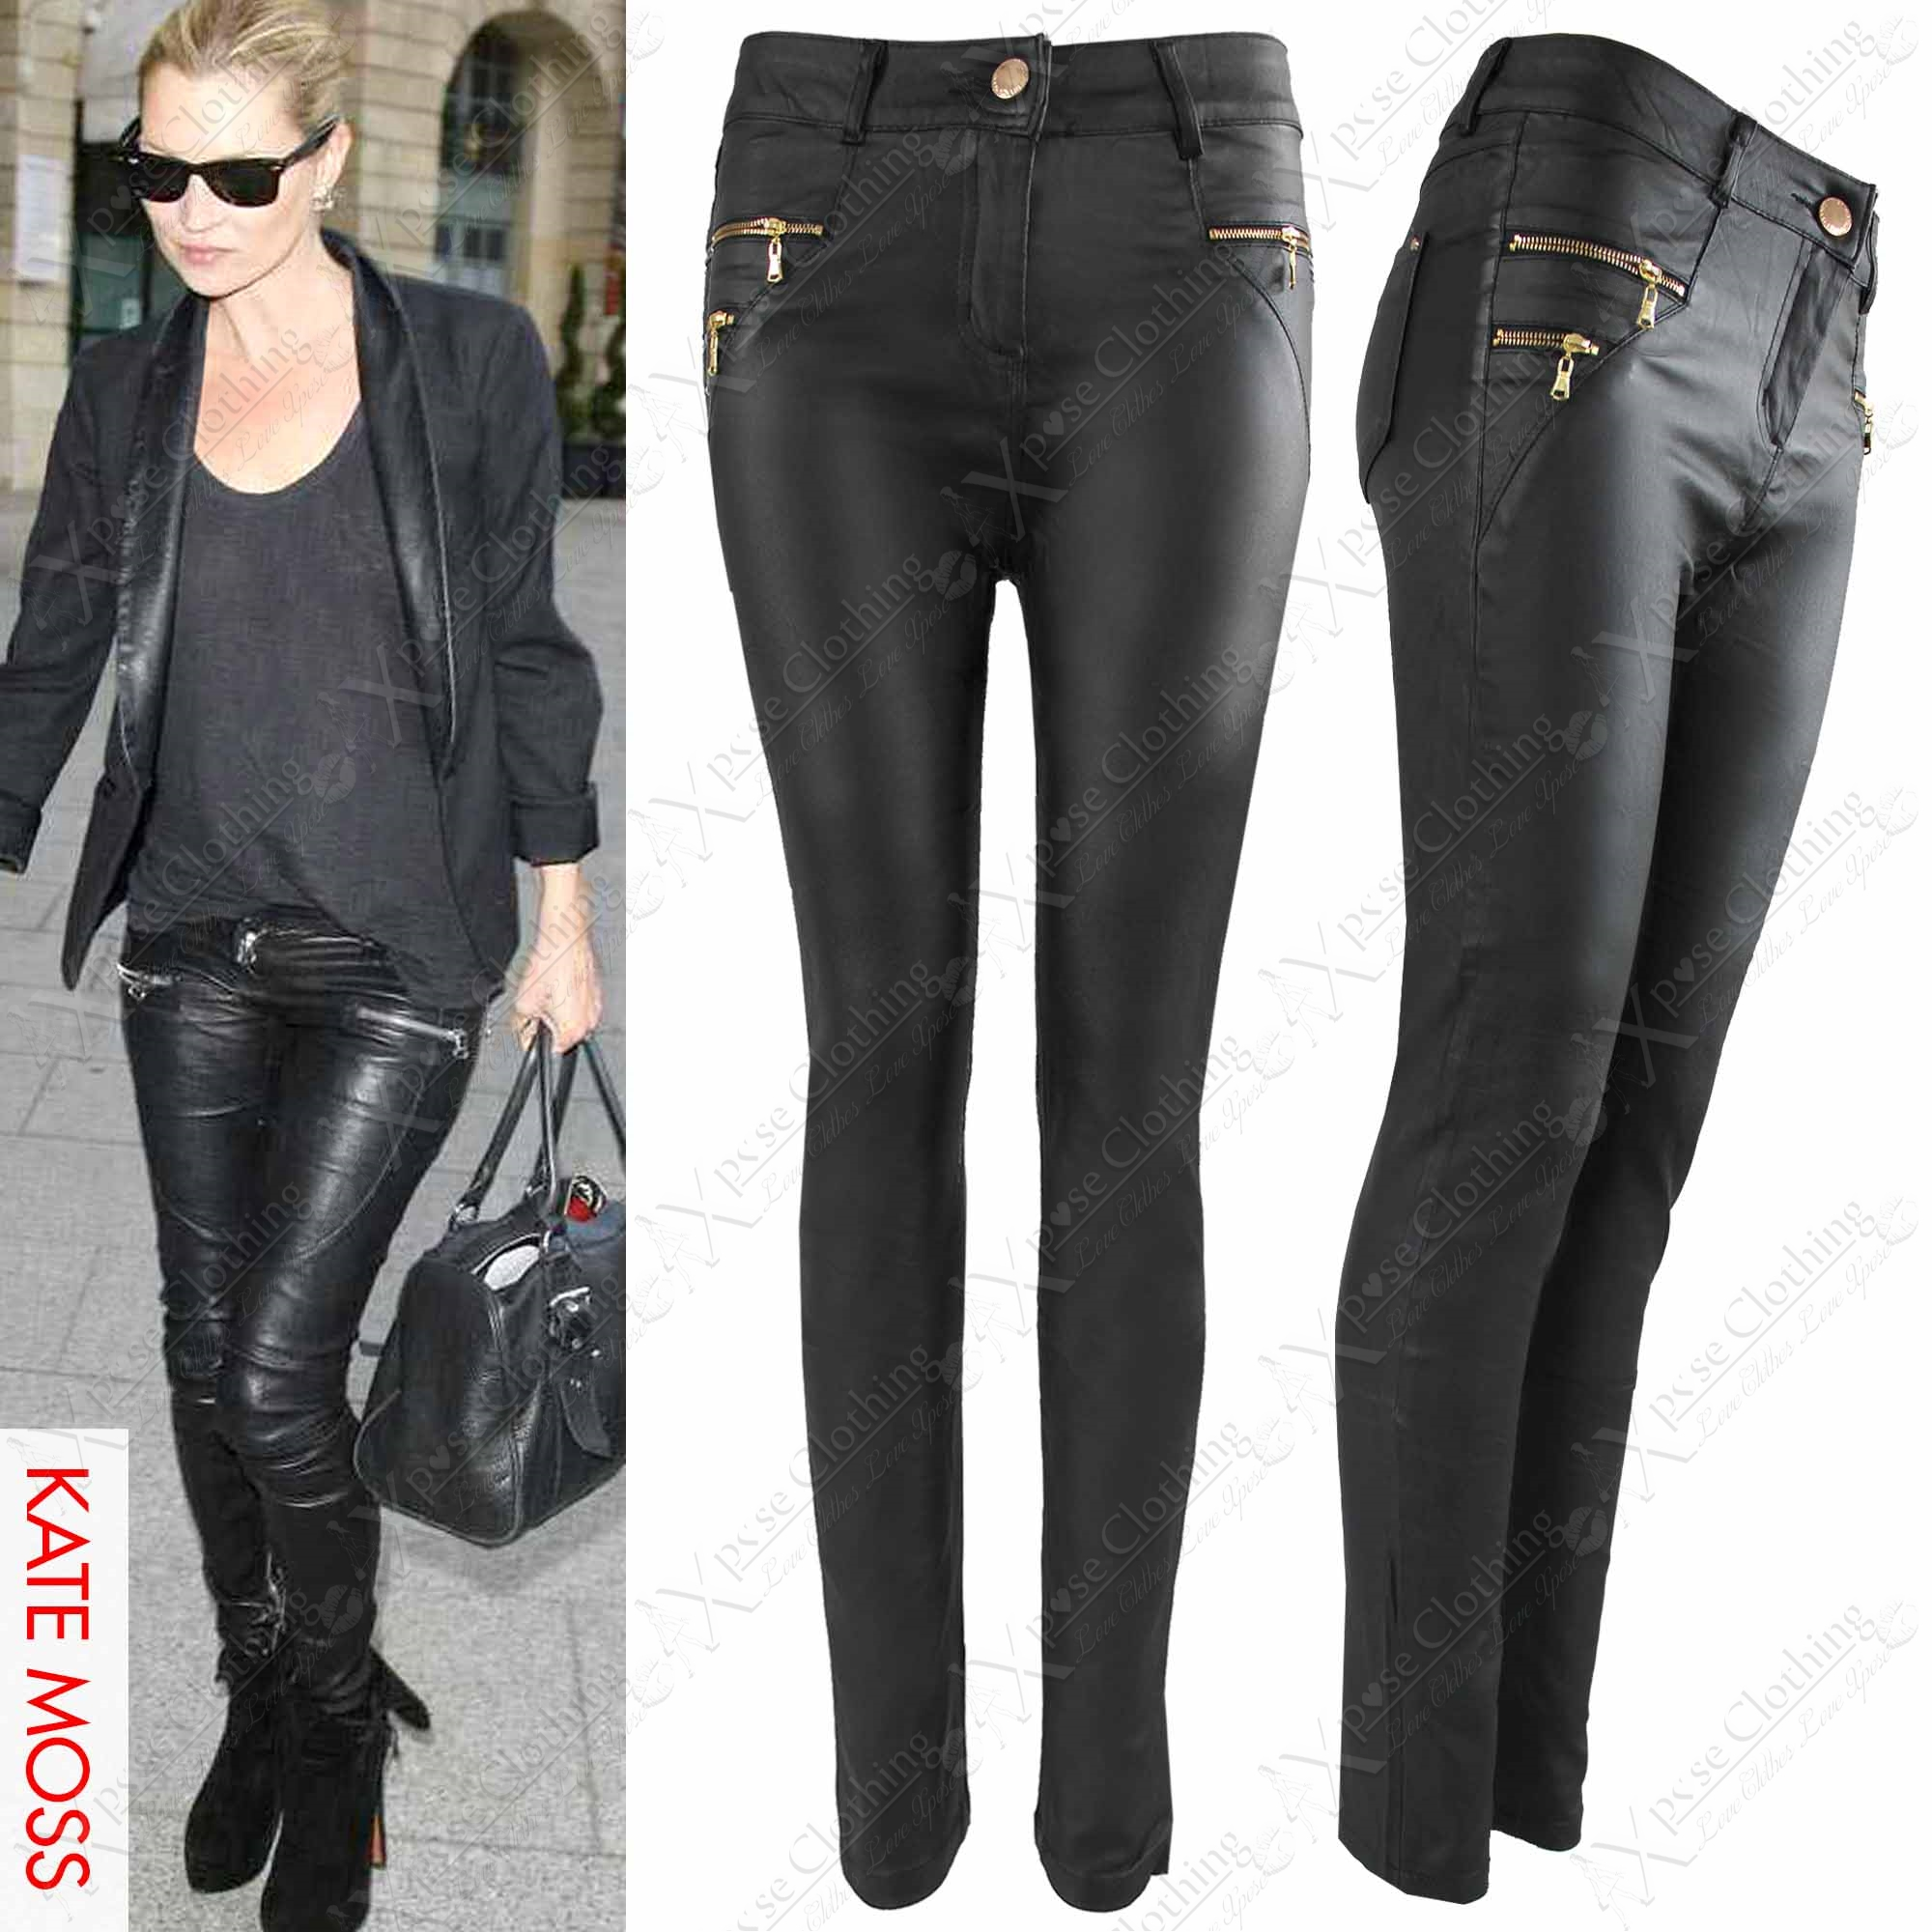 WOMENS LADIES BLACK PU ZIP BIKER JEANS LEATHER LOOK SKINNY STRETCH ...